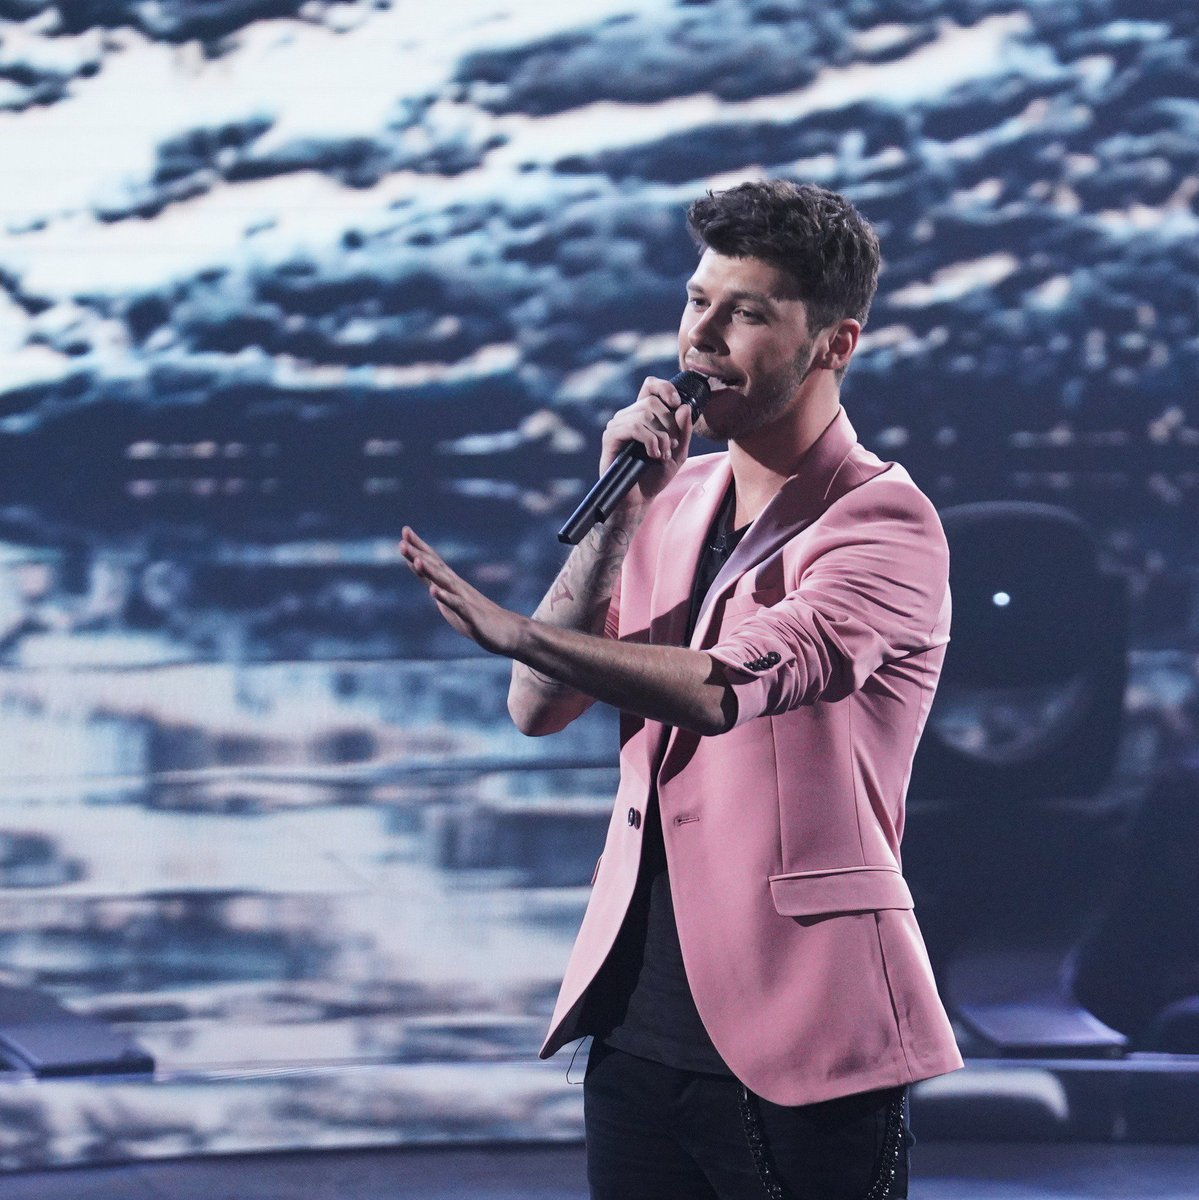 RT @TalentRecap: Ok it's official #TheFour 's @itsjamesgraham is our new MCM ????✨ https://t.co/cpv8VrVIj7